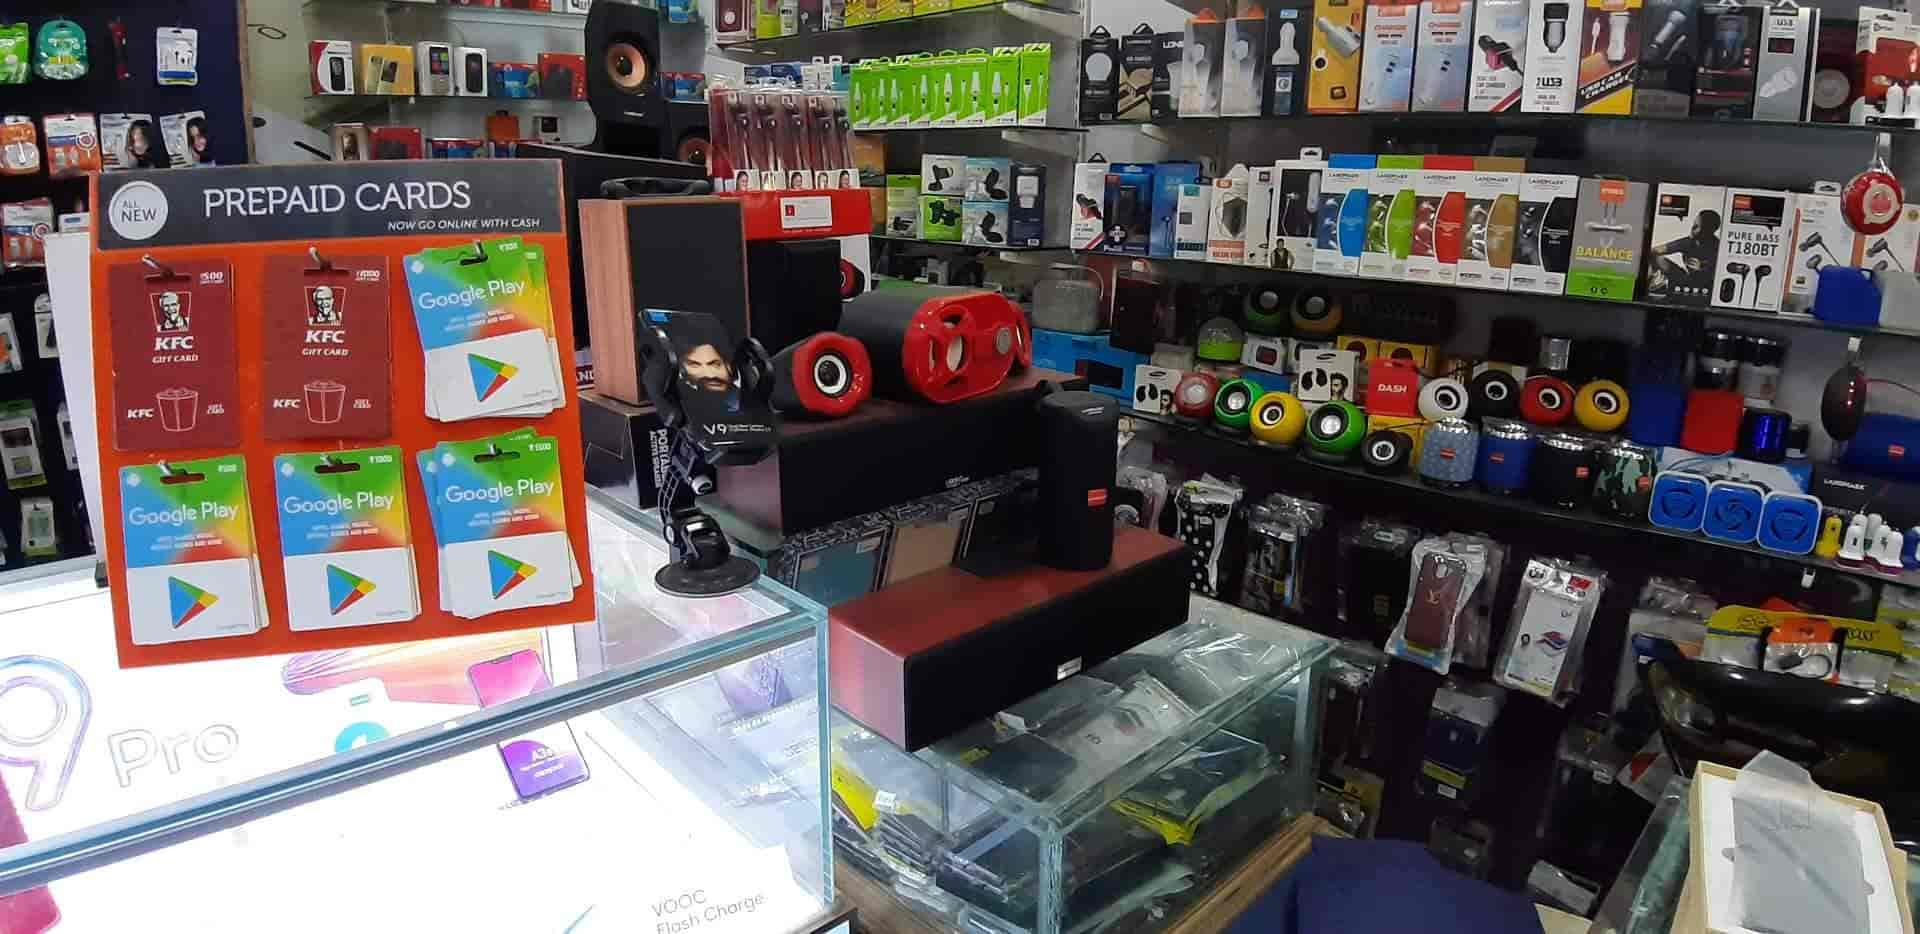 Galaxy Mobiles and Accessories, Banaswadi - Mobile Phone